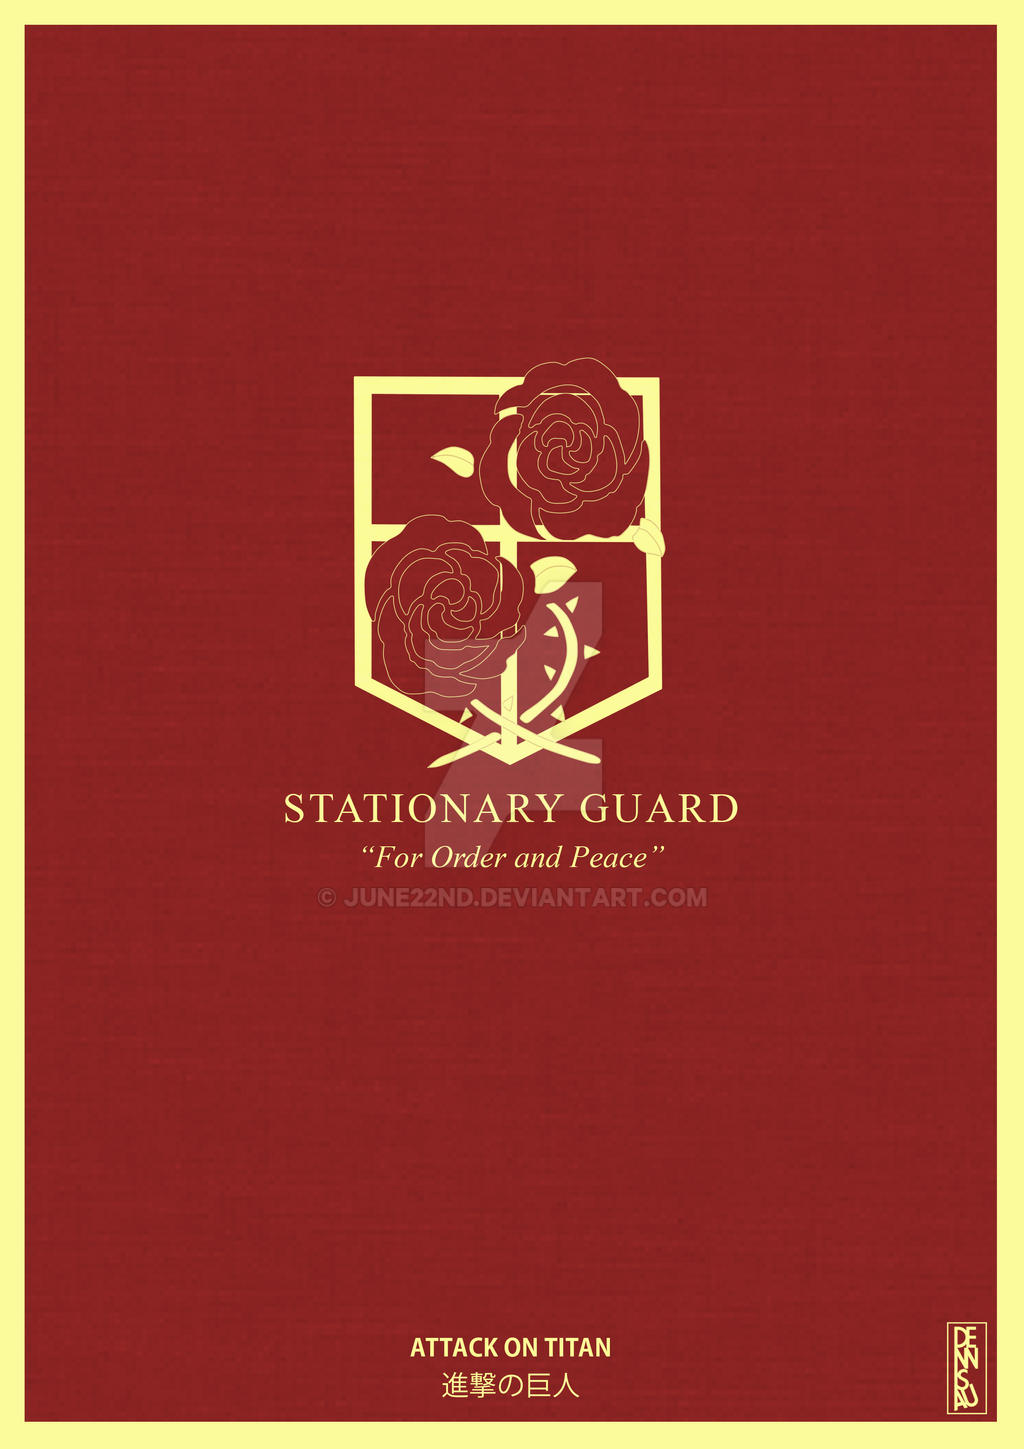 Attack on Titan - Stationary Guard